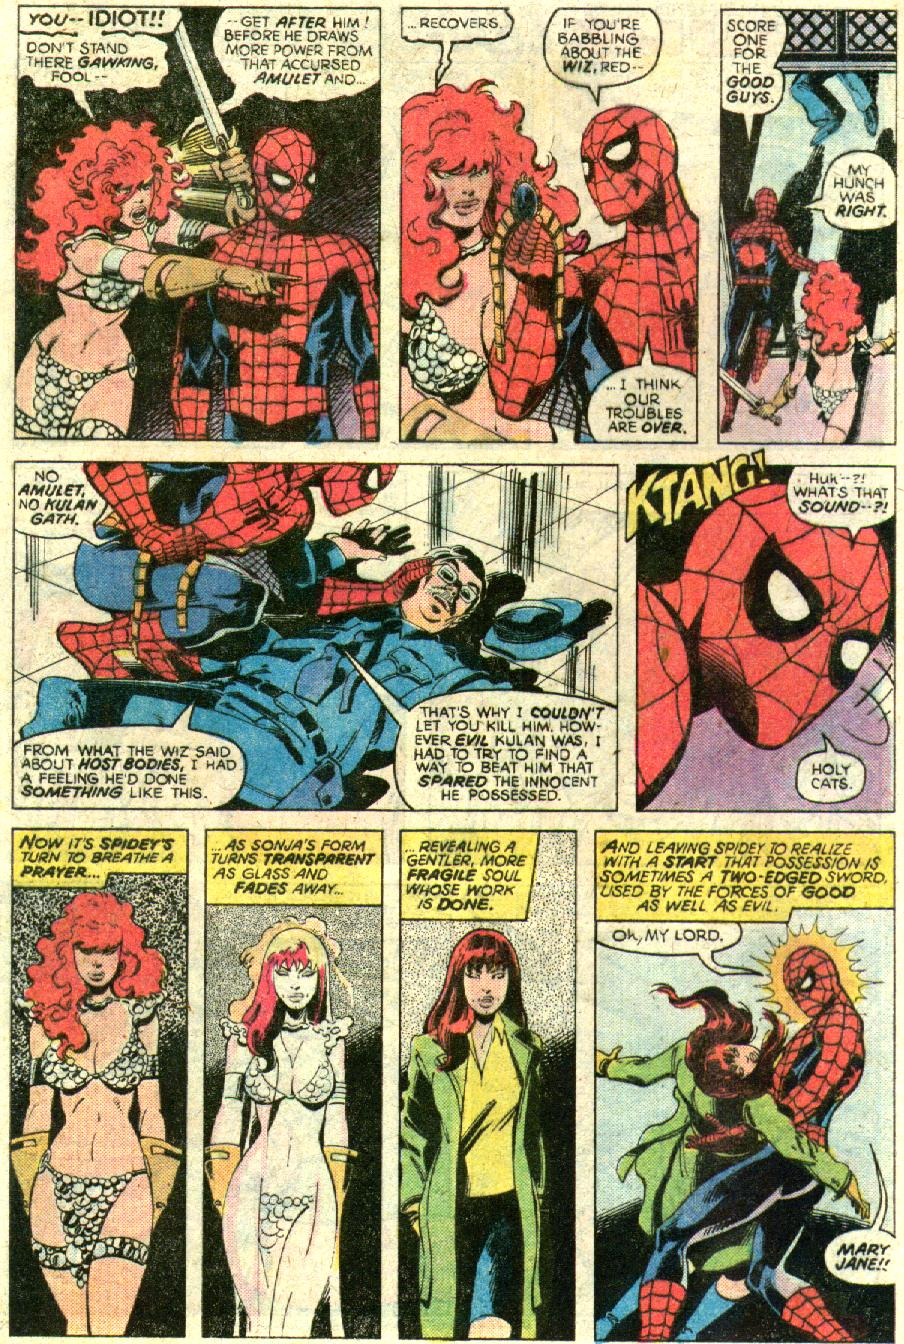 https://vignette2.wikia.nocookie.net/marveldatabase/images/4/4a/Red_Sonja_and_Spider-Man_from_Marvel_Team-Up_Vol_1_79_002.jpg/revision/latest?cb=20160909211344